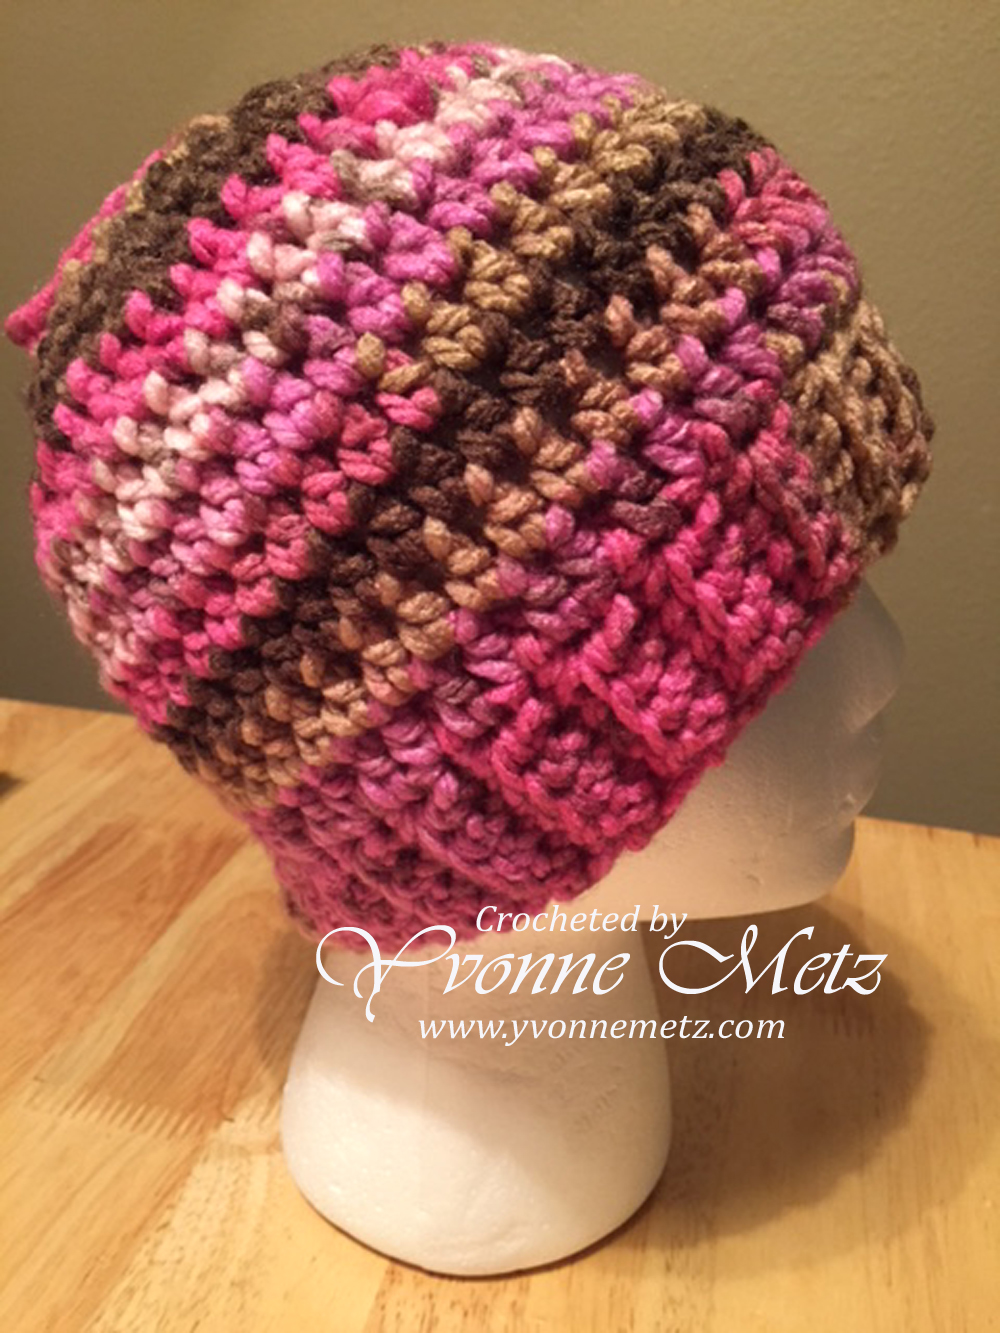 Crocheted Hats Yvonne Metz